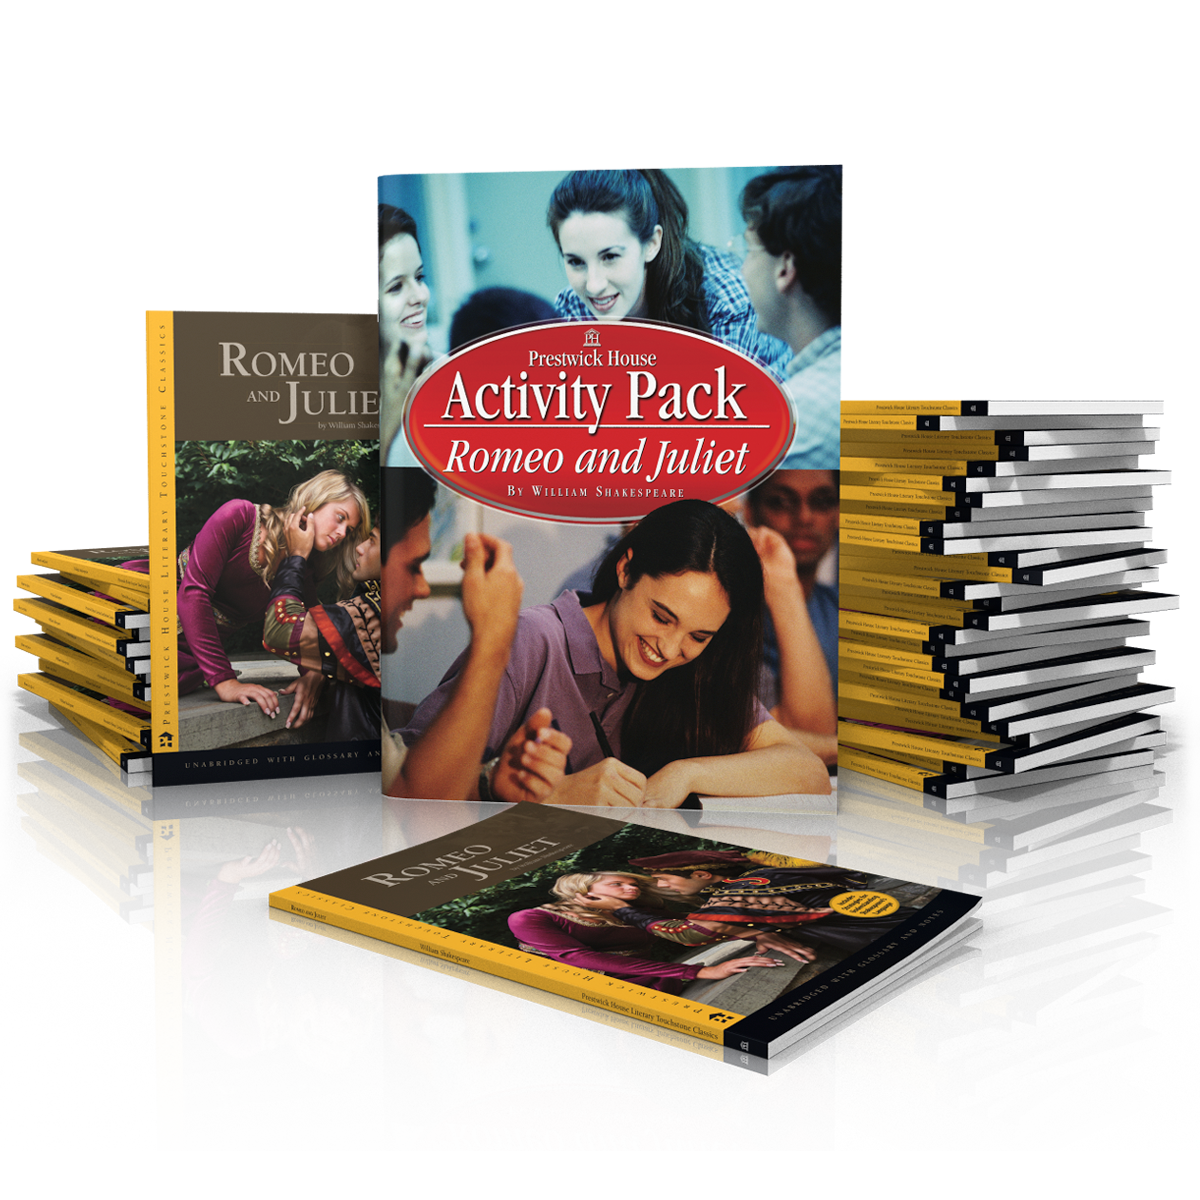 Prestwick House Activity Packs